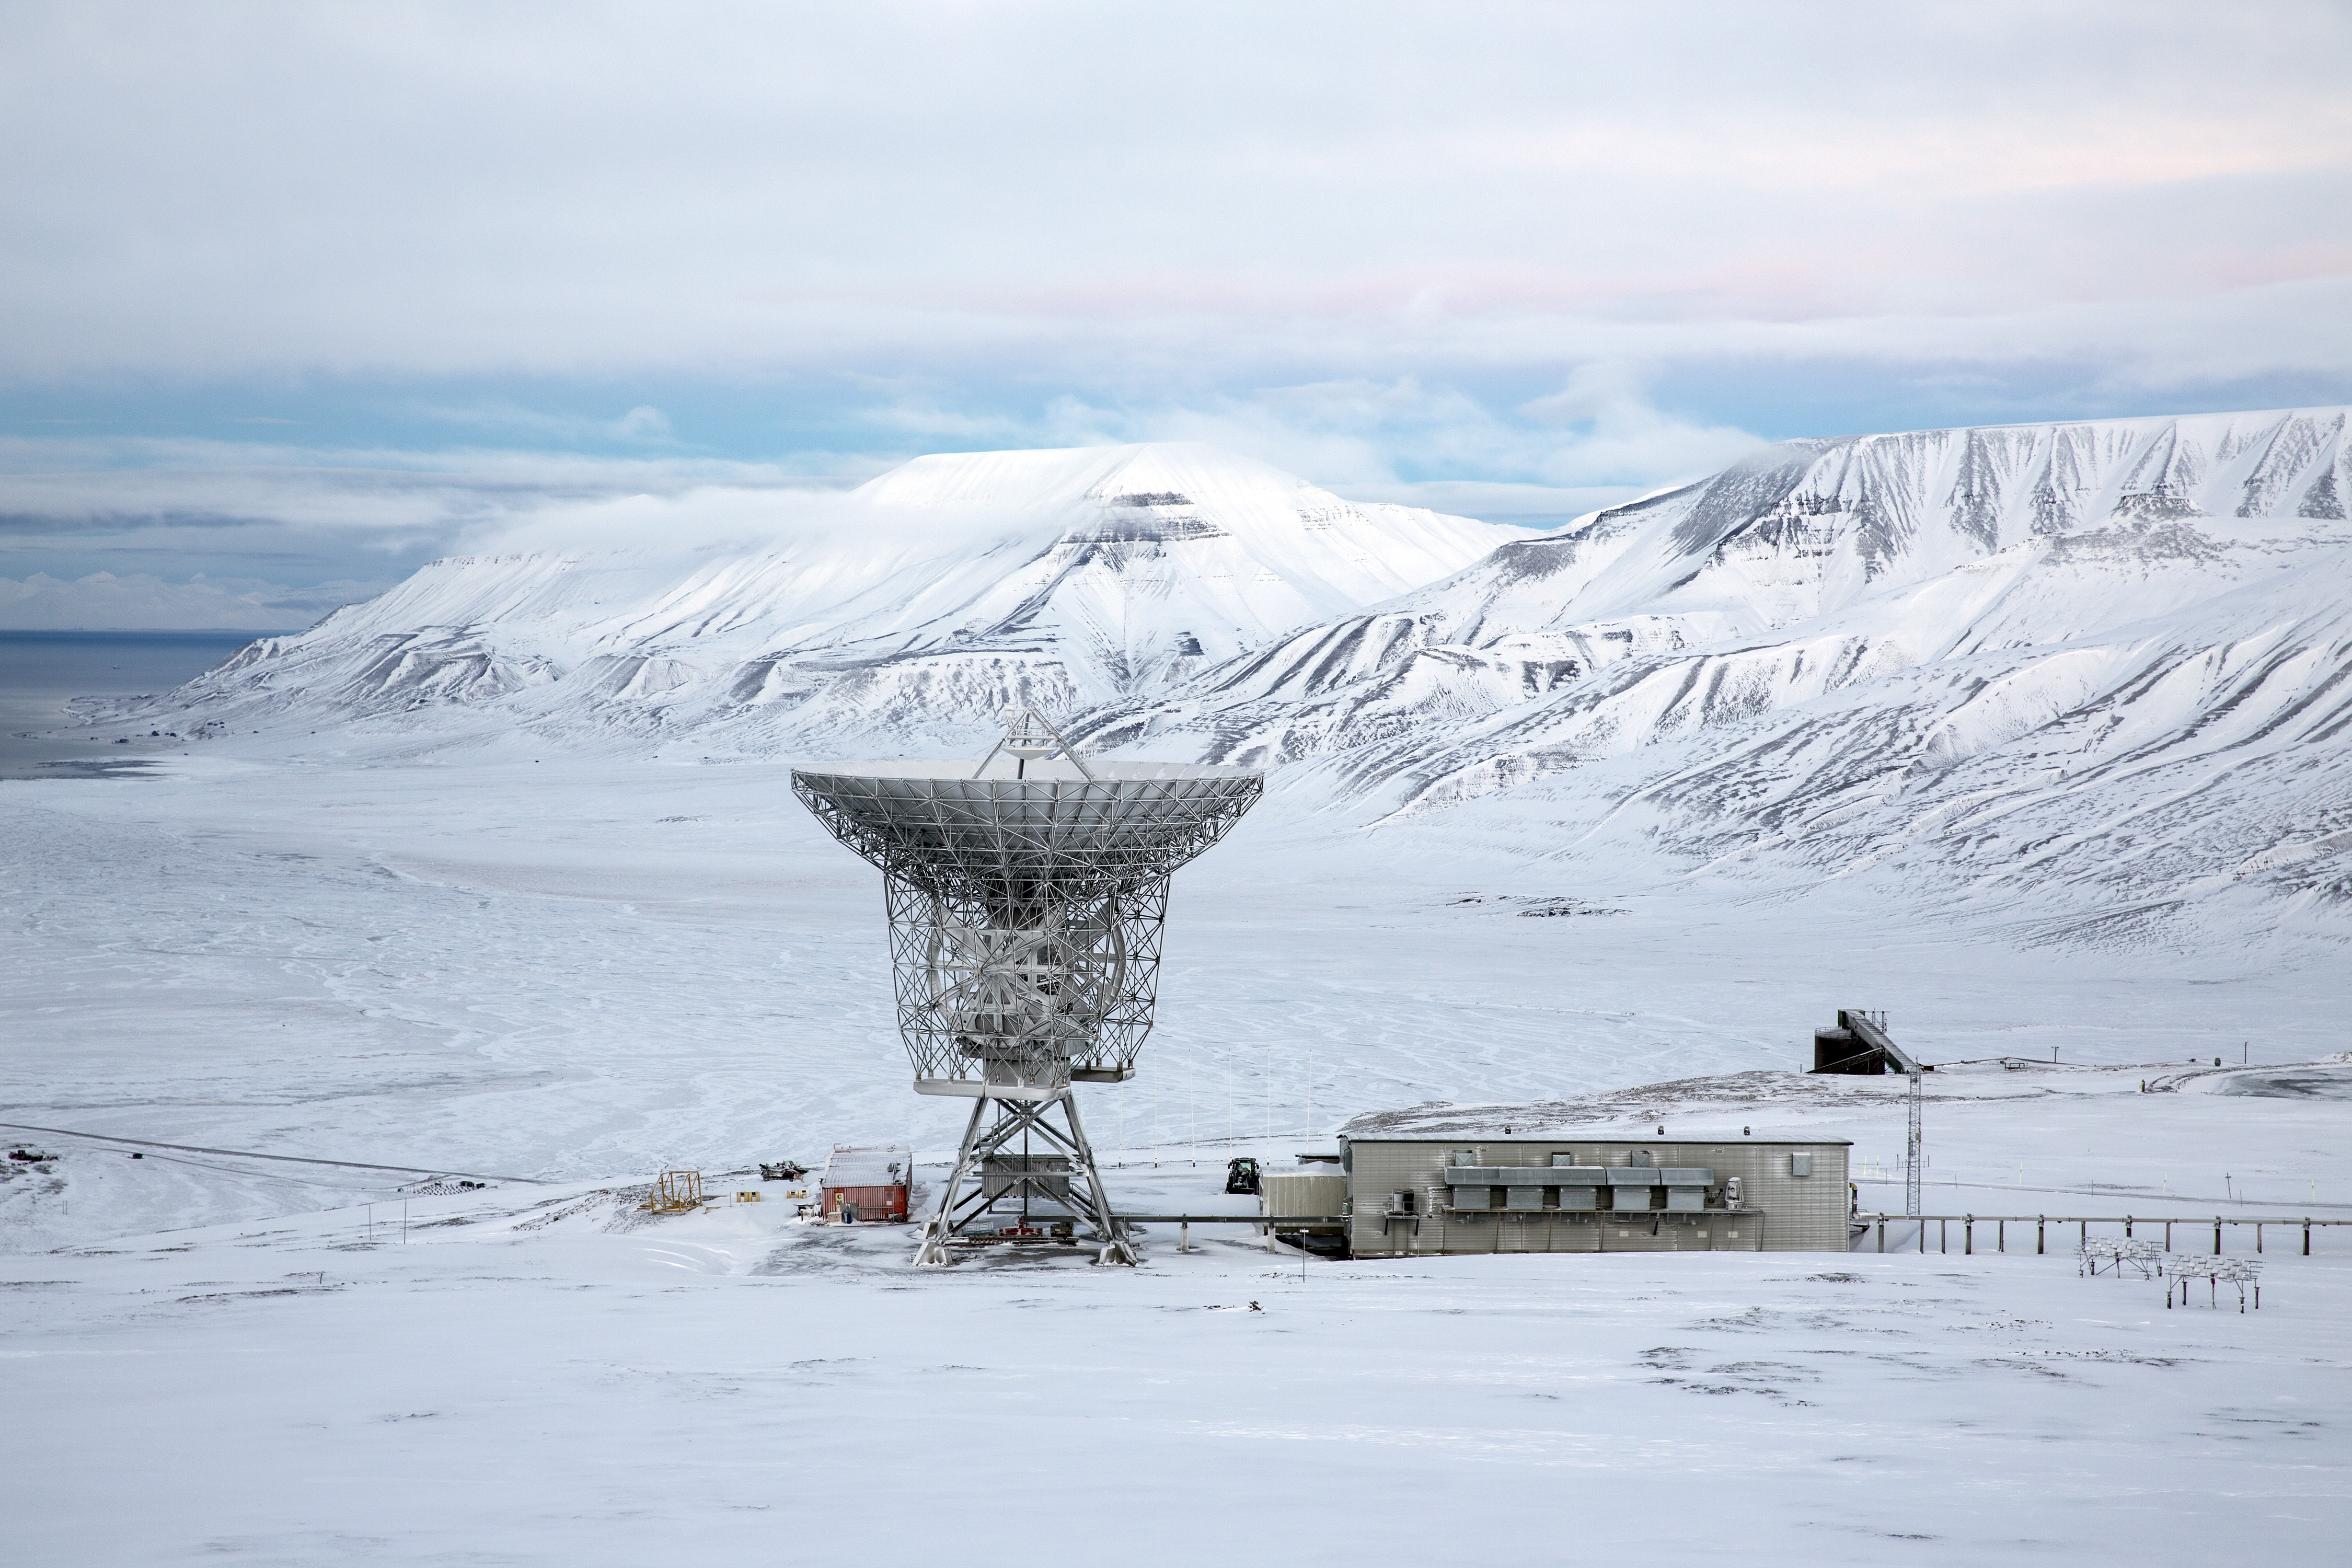 Radar dish and antennas systems are seen at the European Incoherent Scatter Scientific Association facility on Breinosa, Svalbard, in Norway. (REUTERS/Anna Filipova)